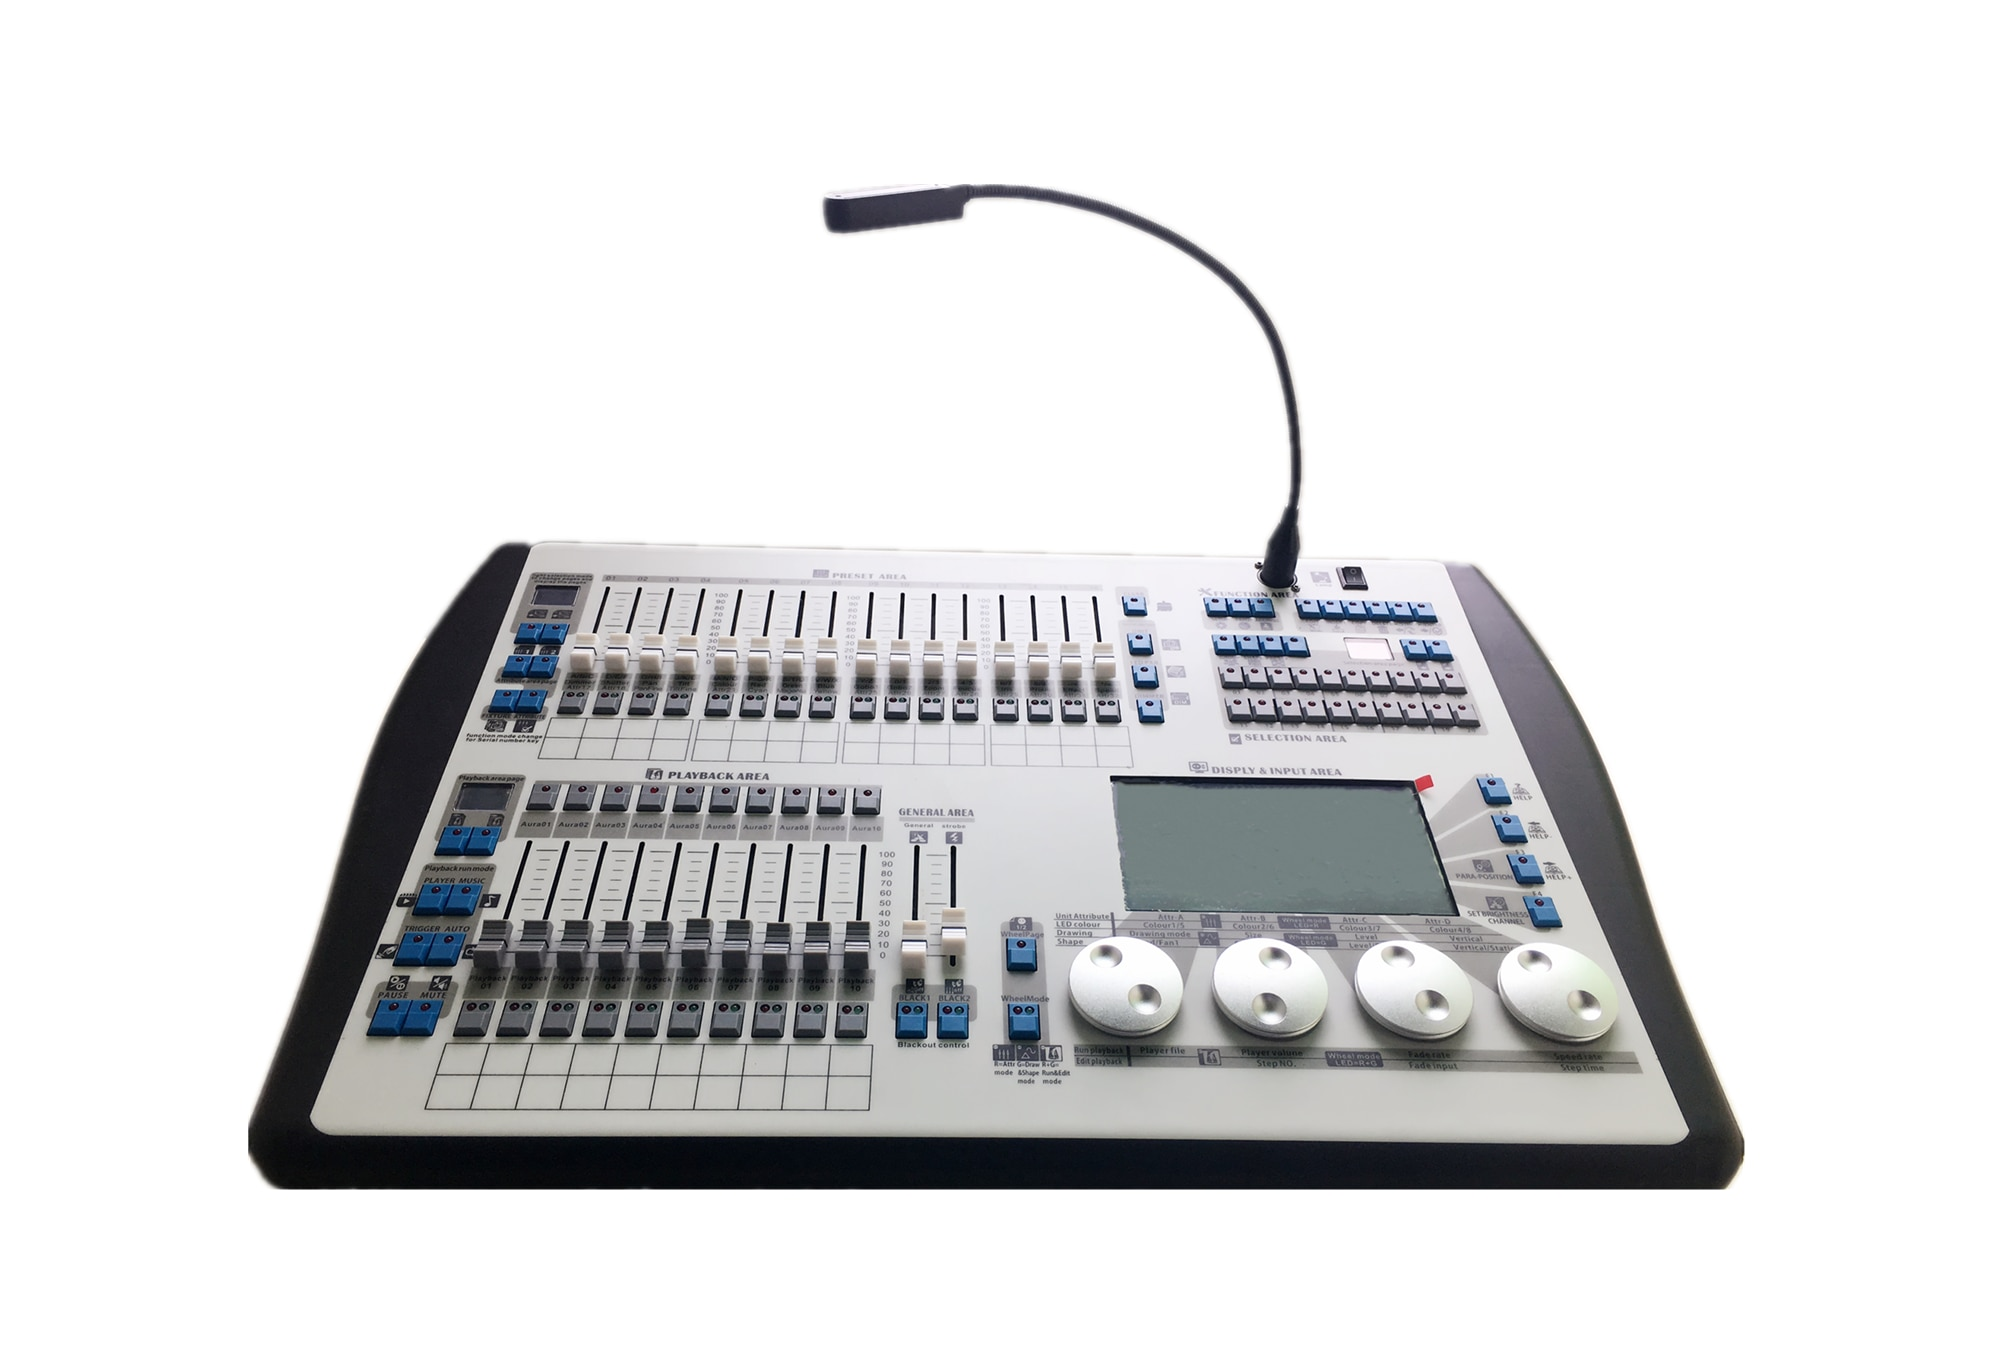 Wholsale stage light controller 1024 hand drawing dmx dj lighting console can custom any shapes for moving head light disco bar